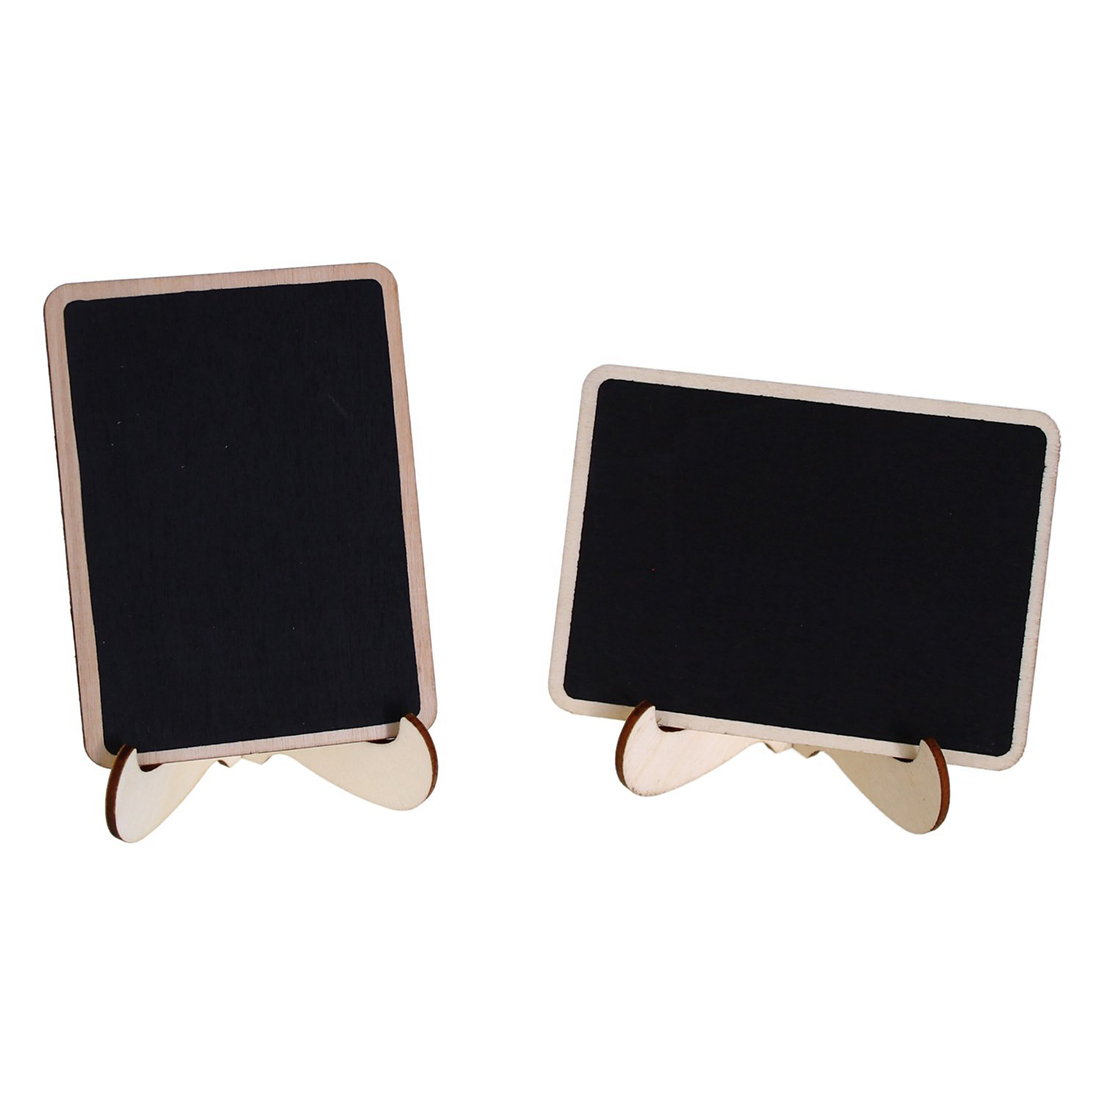 Chalkboard Place Cards with Easel Stand and Chalk for Wedding, Table Top Numbers, Food Signs and Special Event Decor (10 Sets)